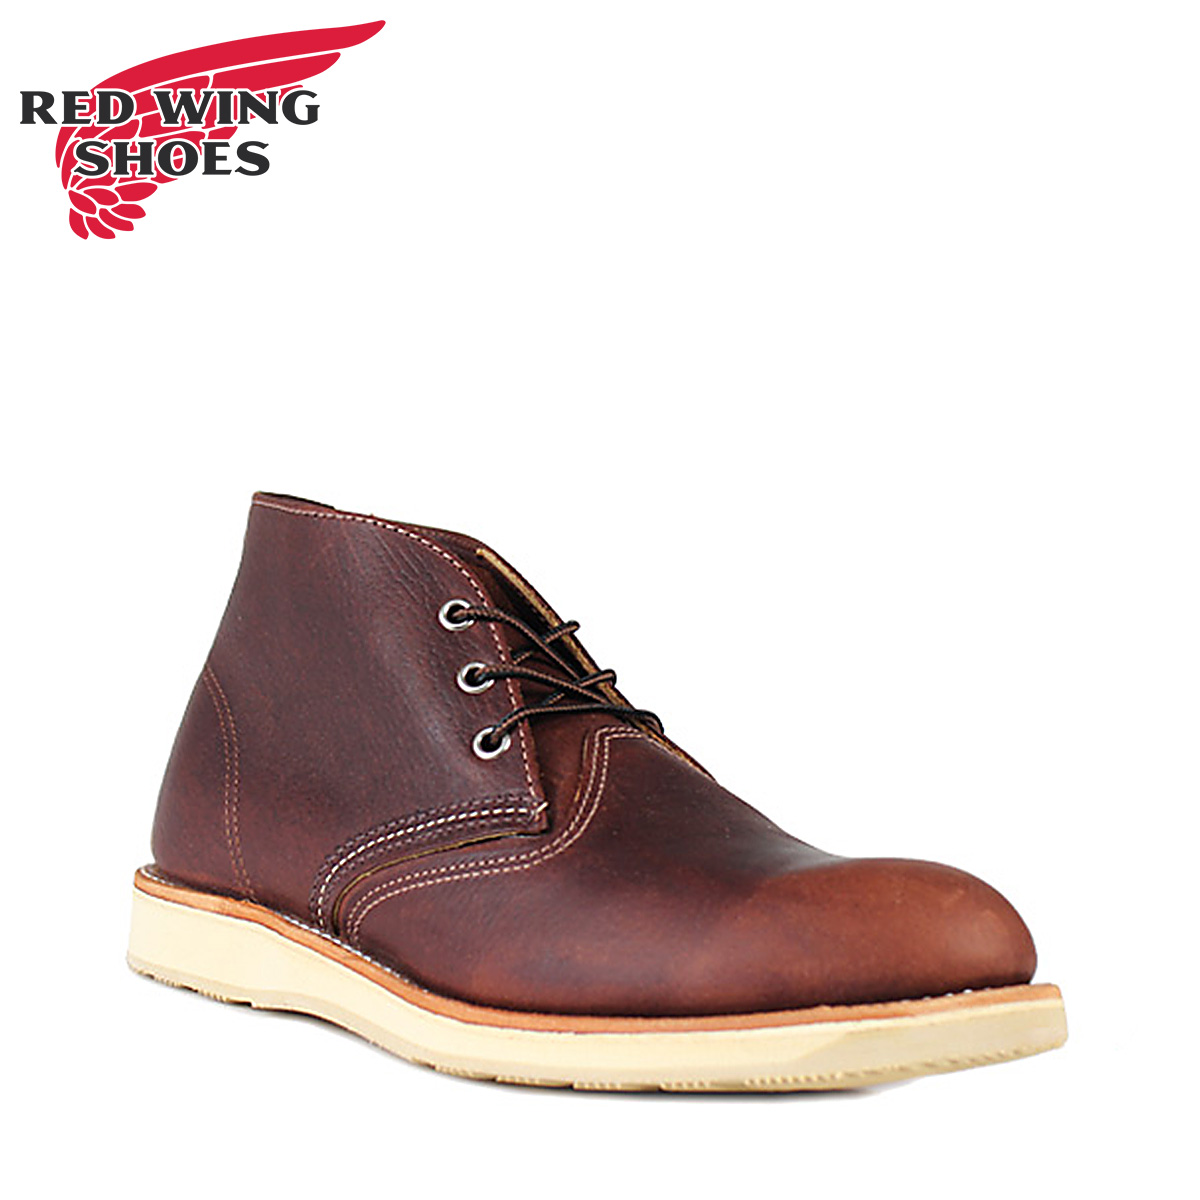 e8c95c629 ALLSPORTS: Redwing RED WING work chukka boots 3141 Work Chukka D wise  ブライアーオイルスリック leather mens Made in USA Red Wing] | Rakuten Global Market